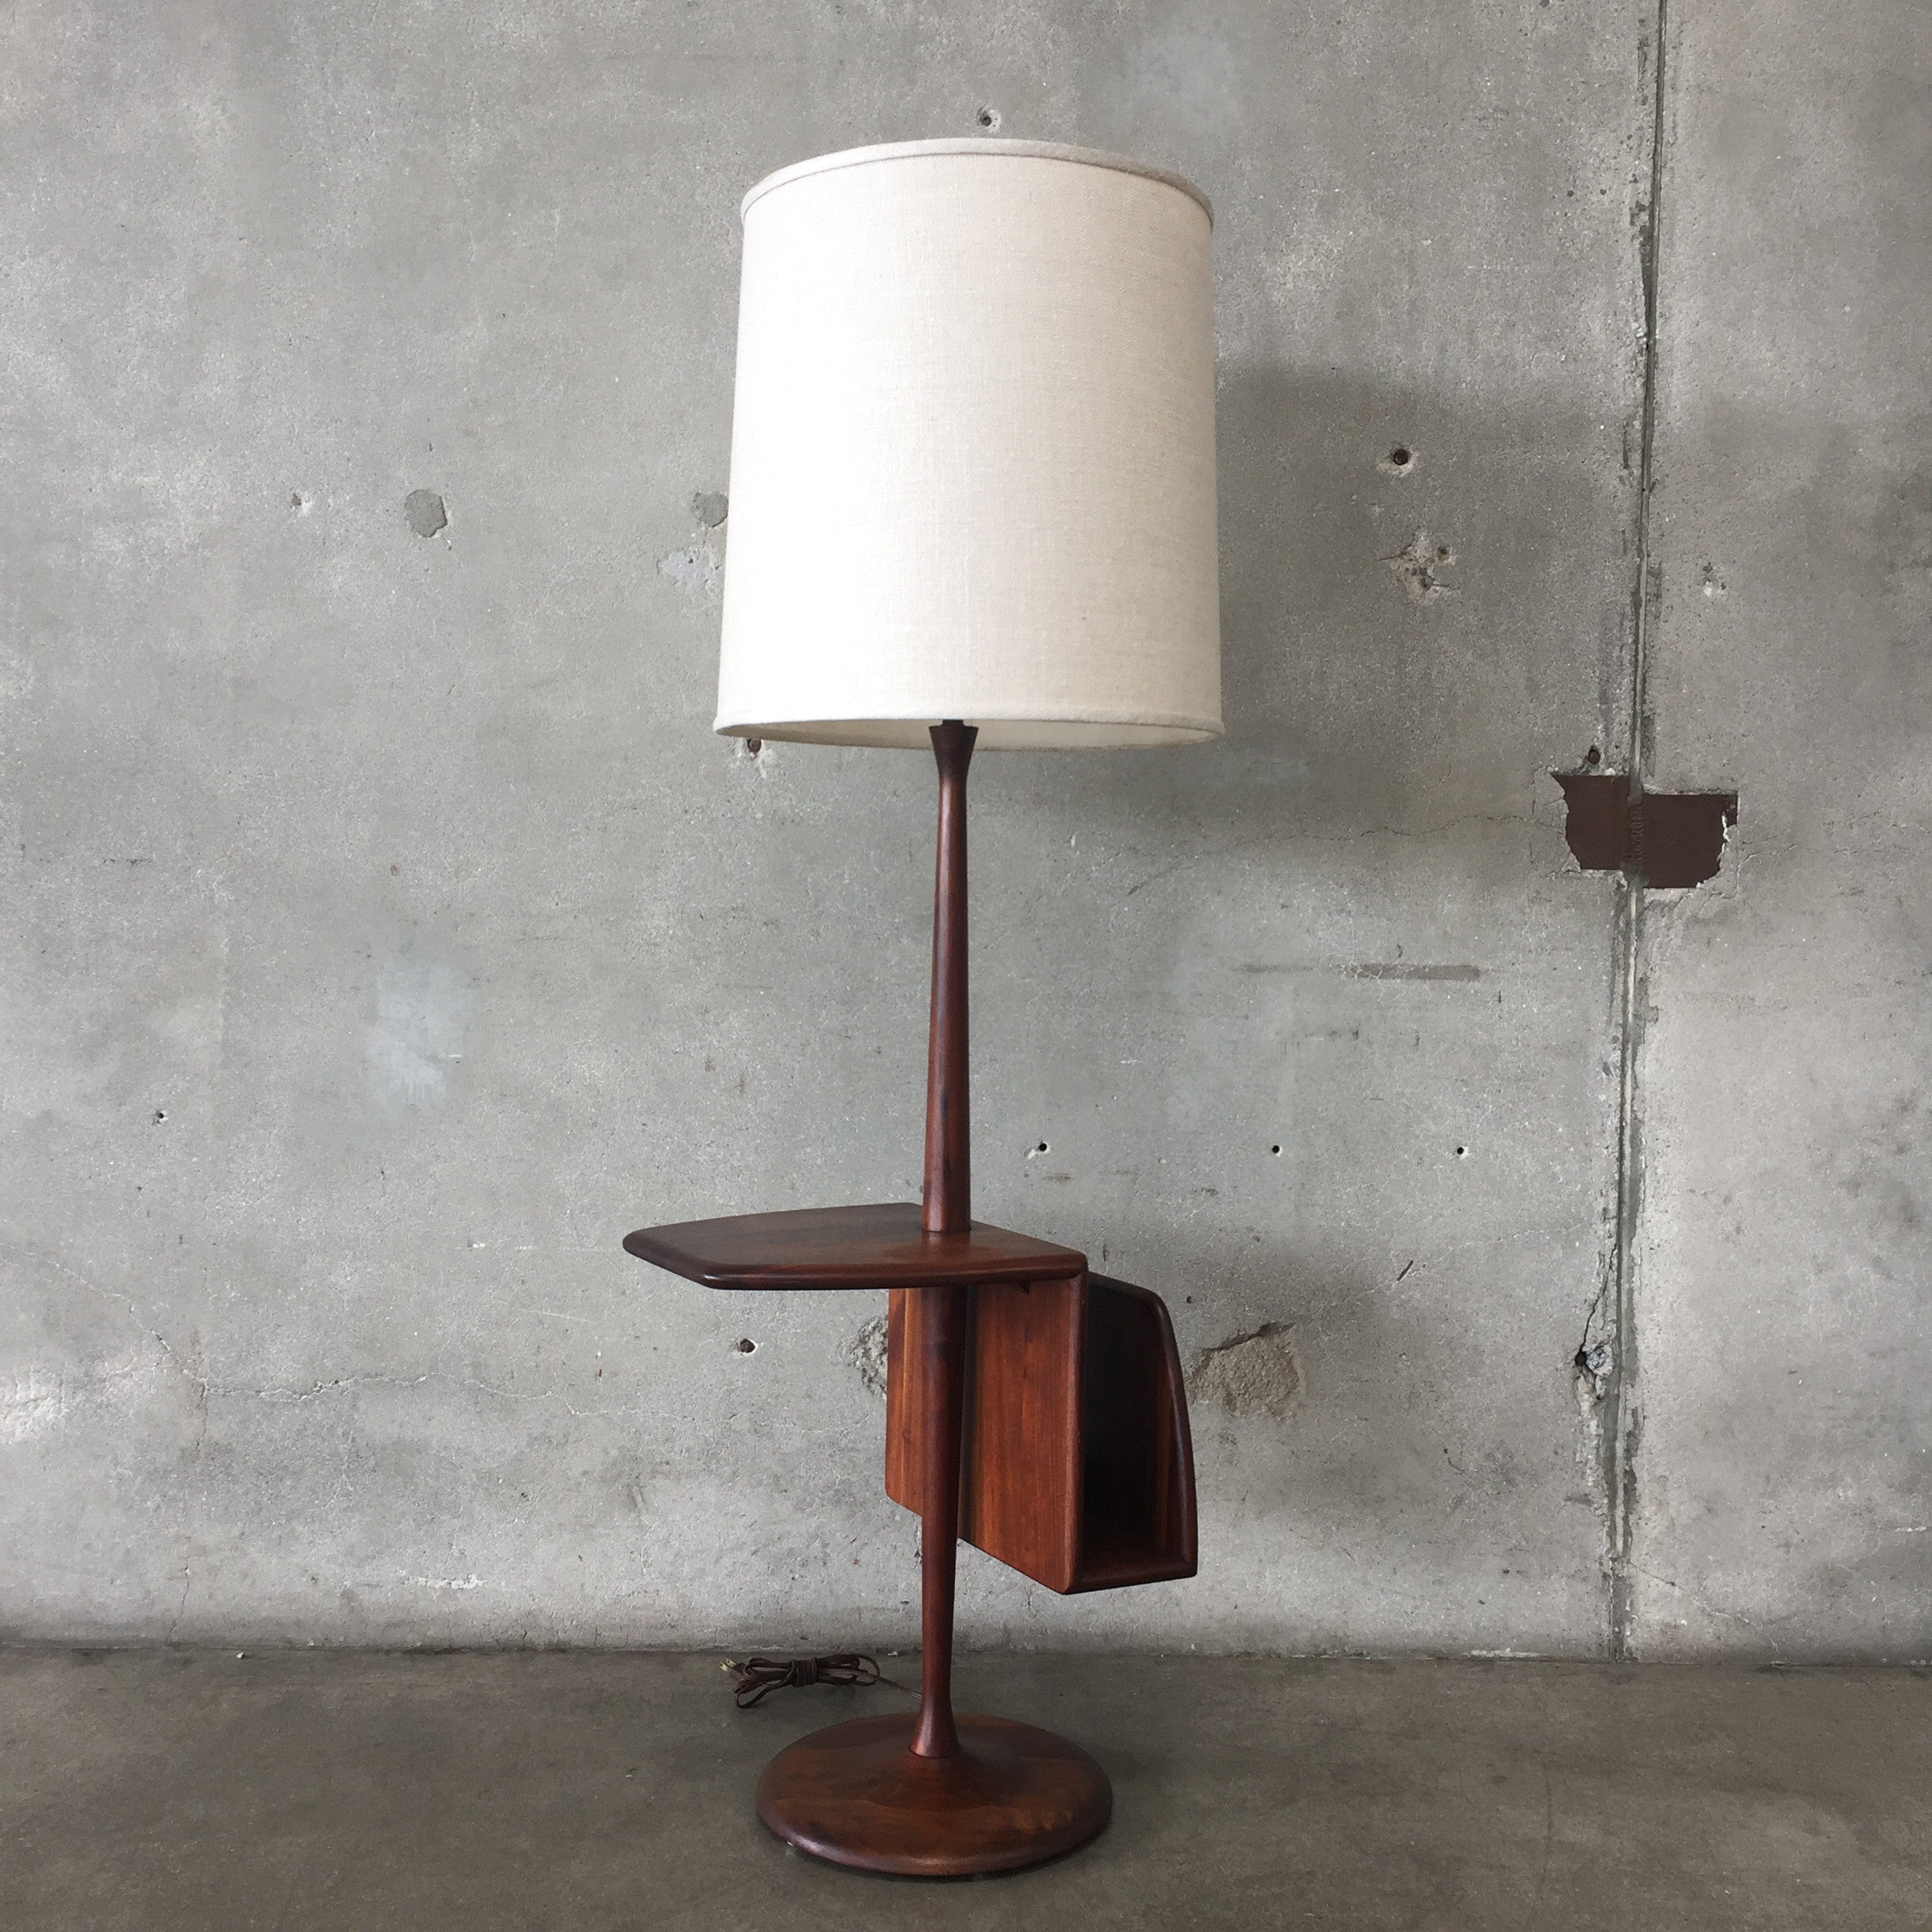 Mid century modern laurel floor lamp with table and magazine mid century modern laurel floor lamp with table and magazine holder mozeypictures Images